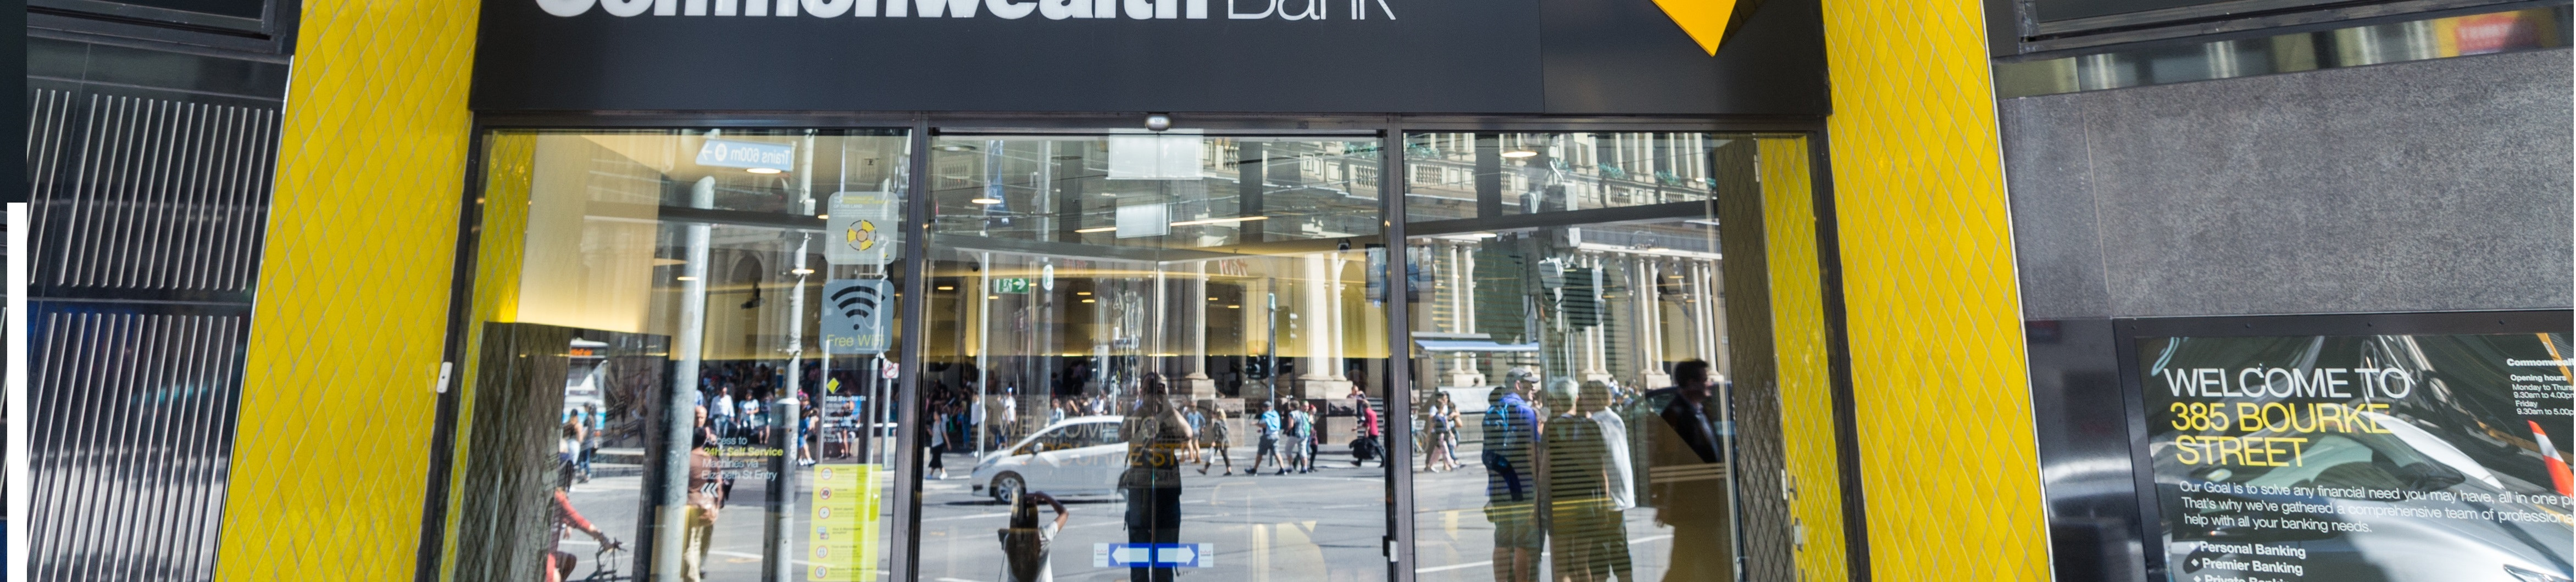 Six questions our banks need to answer to regain trust